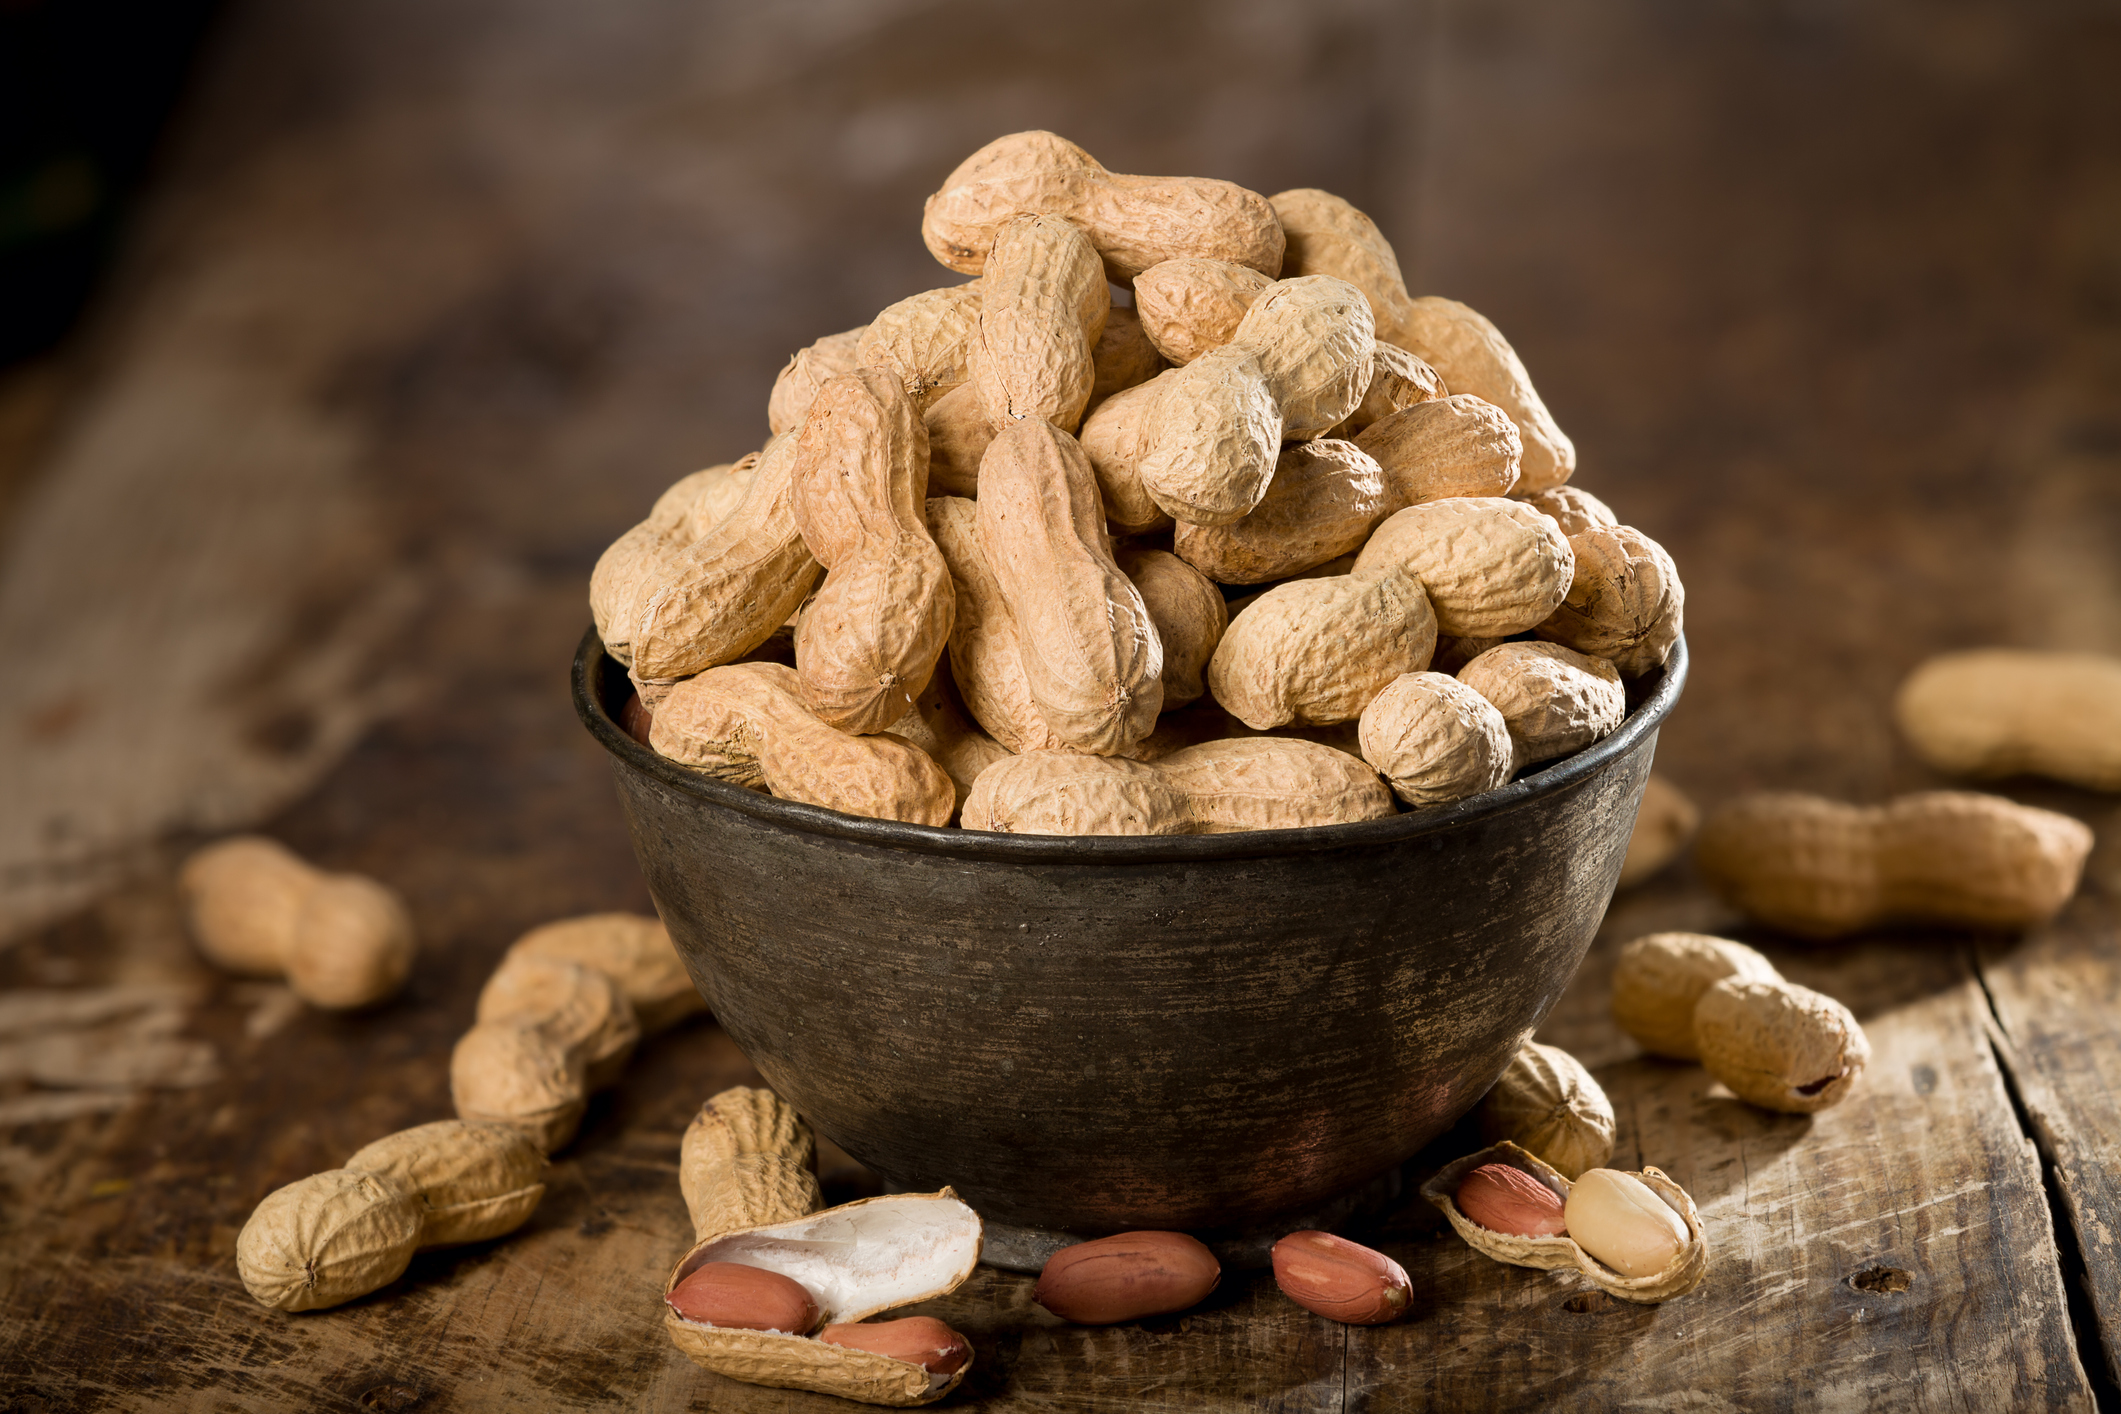 Aimmune Peanut Allergy Treatment